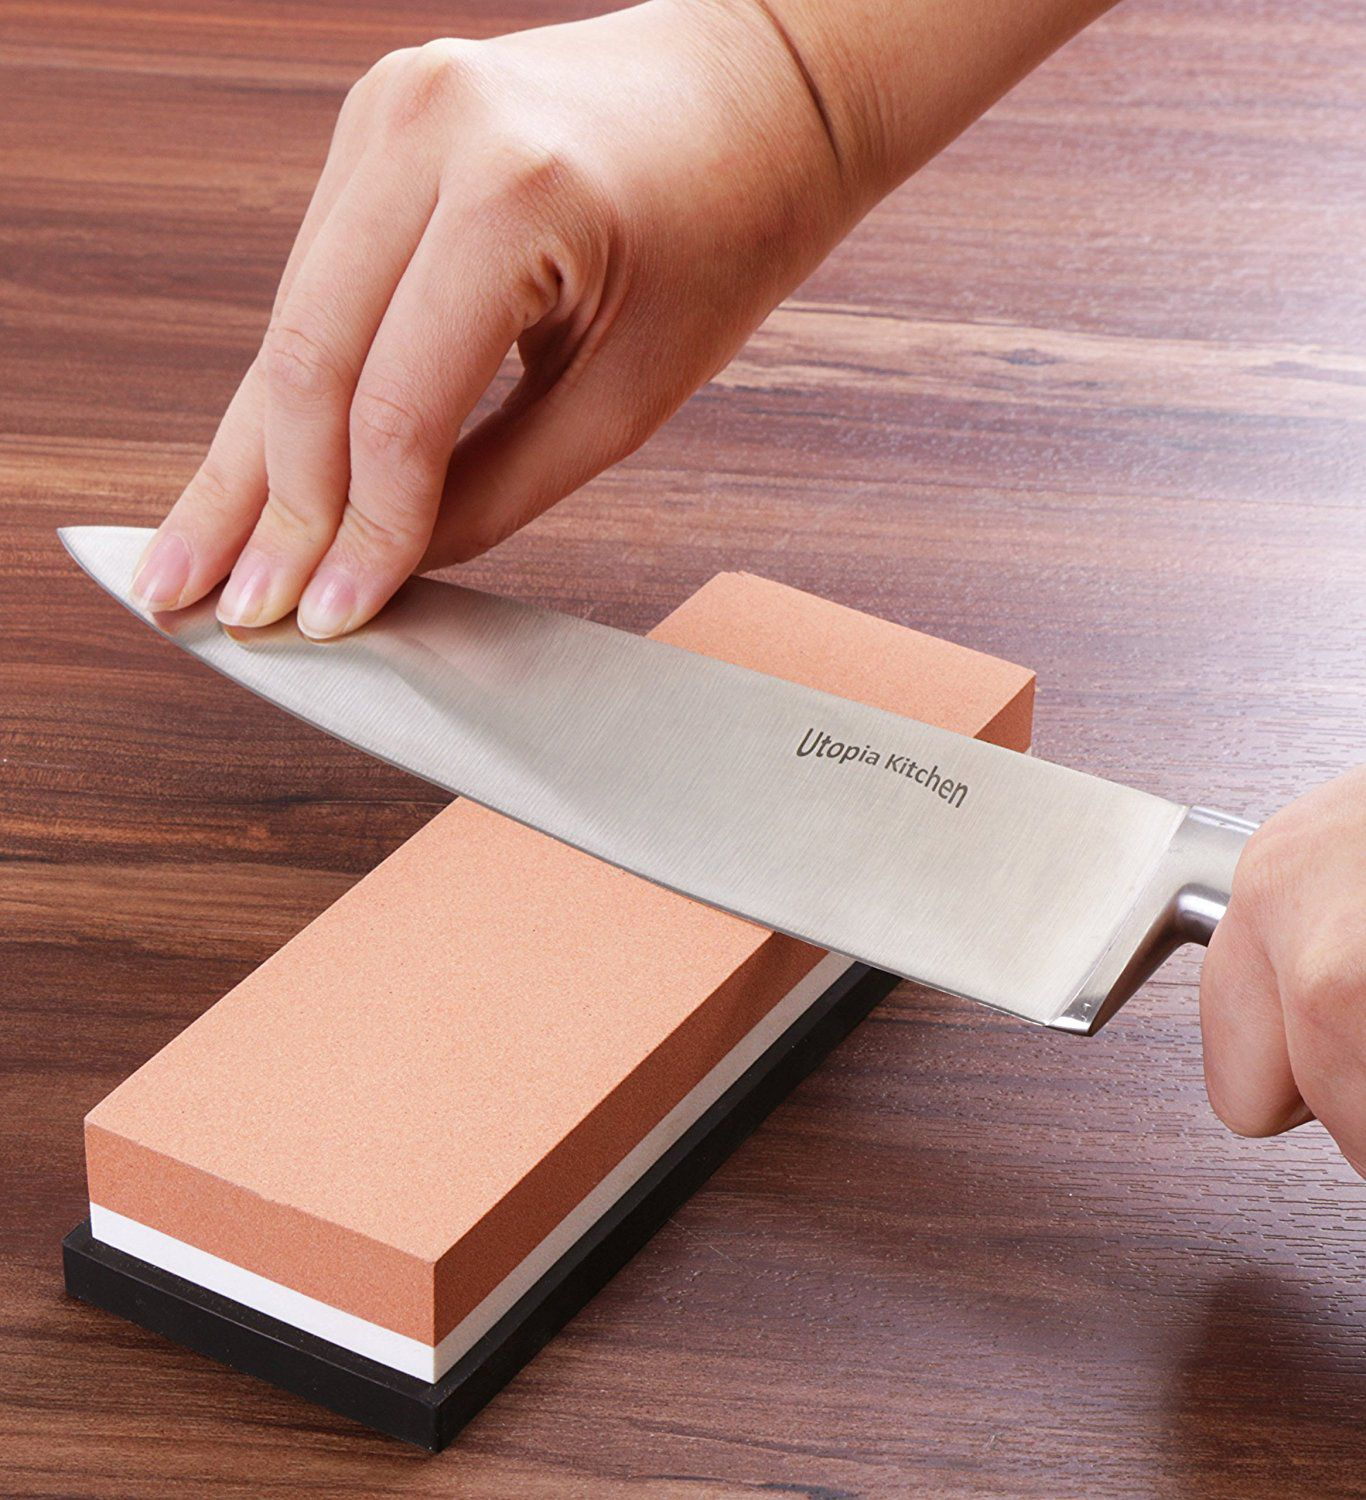 Double-Sided Knife Sharpening Stone Multi-Colored - 600/1000 Grit